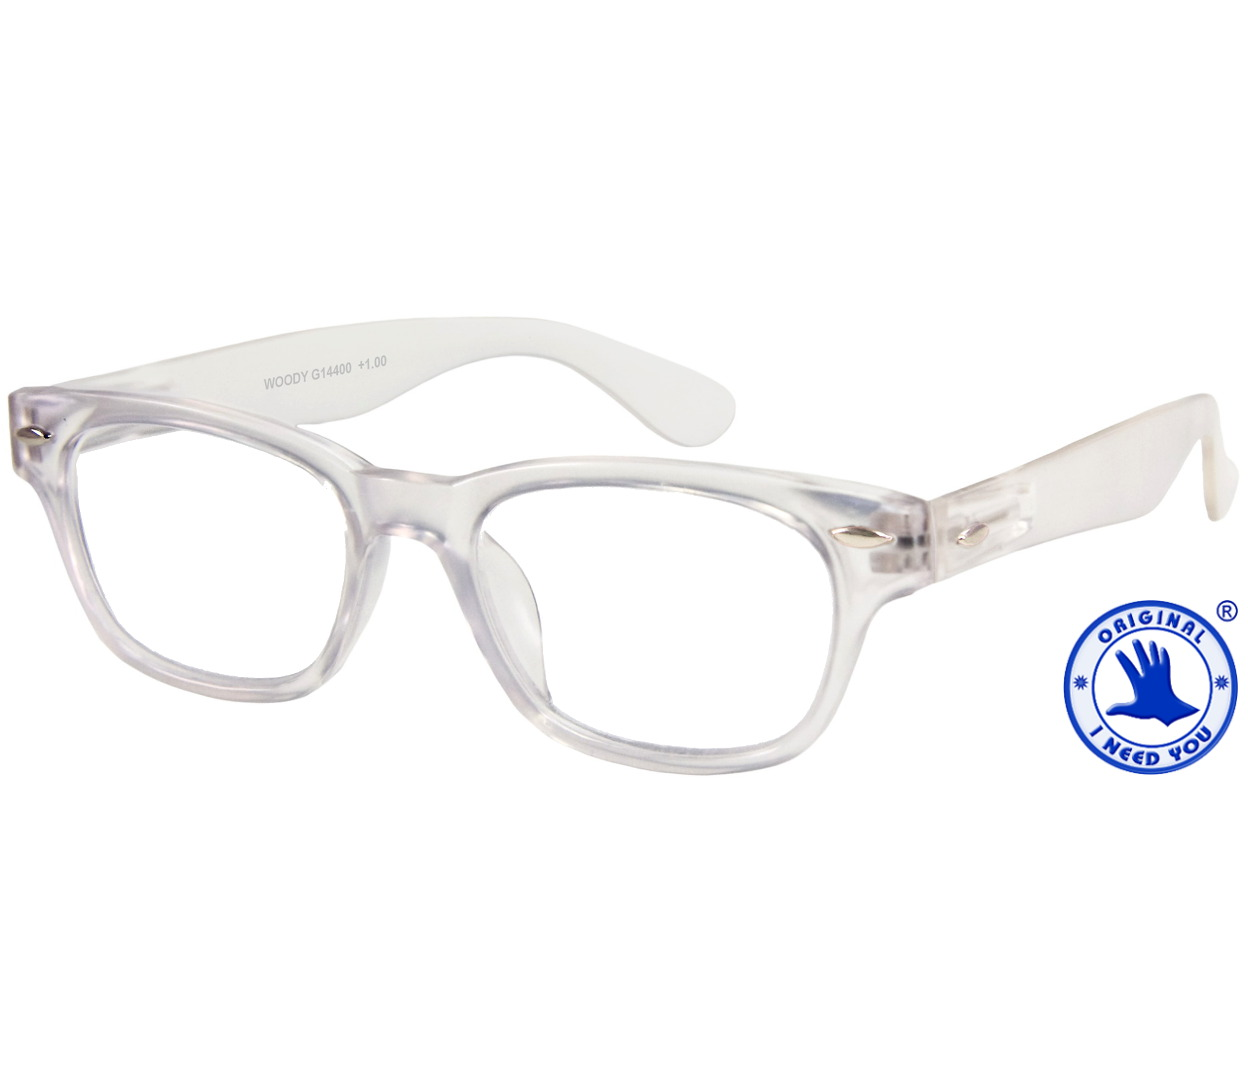 Our reading glasses with clear lenses are perfect for daily use. When shopping for new readers, keep style and shape in mind to meet your needs. Find the appropriate strength for your vision in this convenient power finder guide.